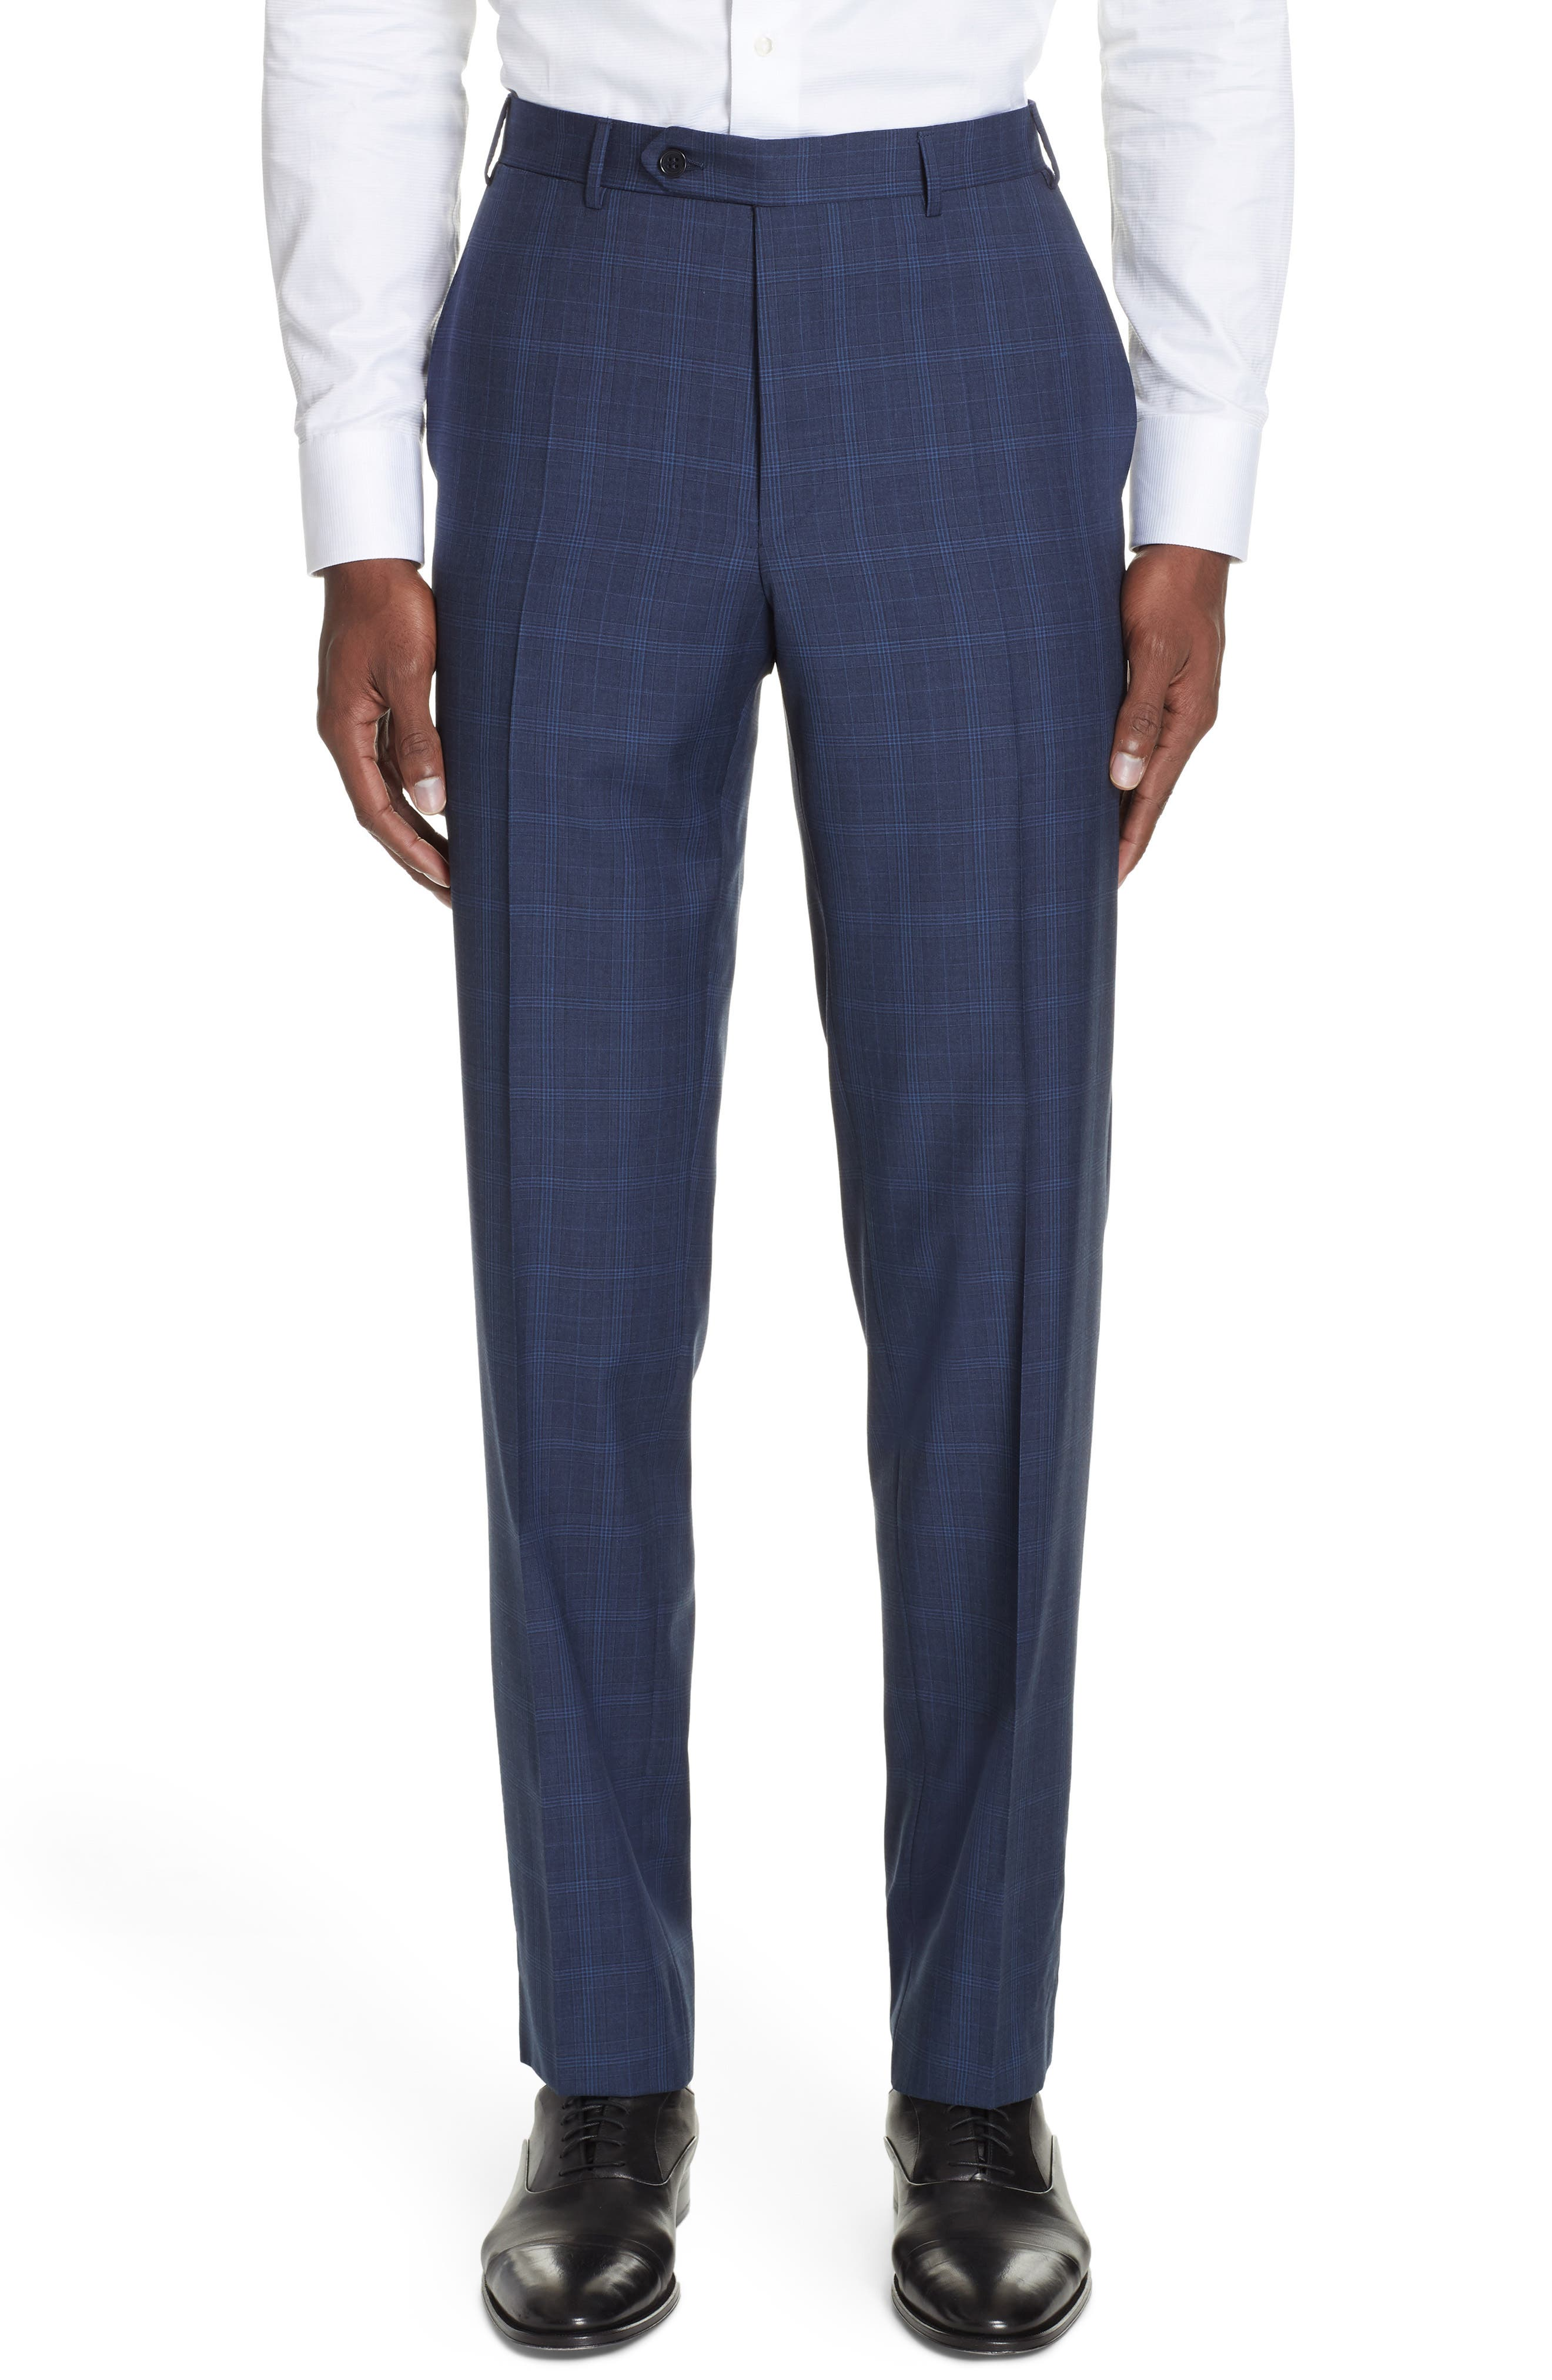 CANALI, Sienna Classic Fit Plaid Wool Suit, Alternate thumbnail 6, color, NAVY